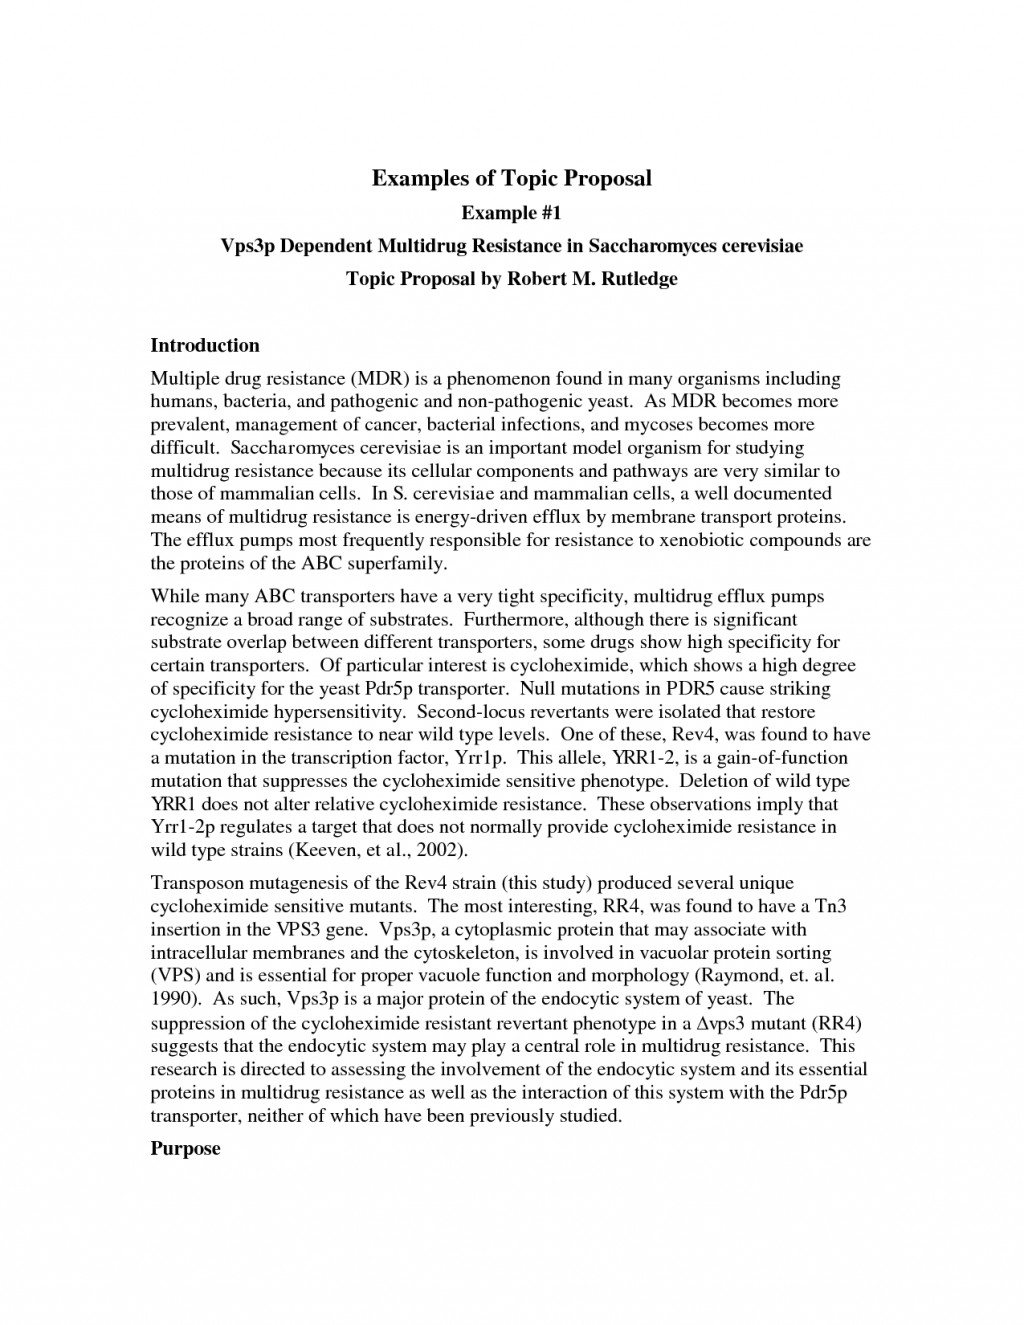 012 Qsfuacfzkn Essay Example Excellent Proposal Group Paper Examples Free Argument Large